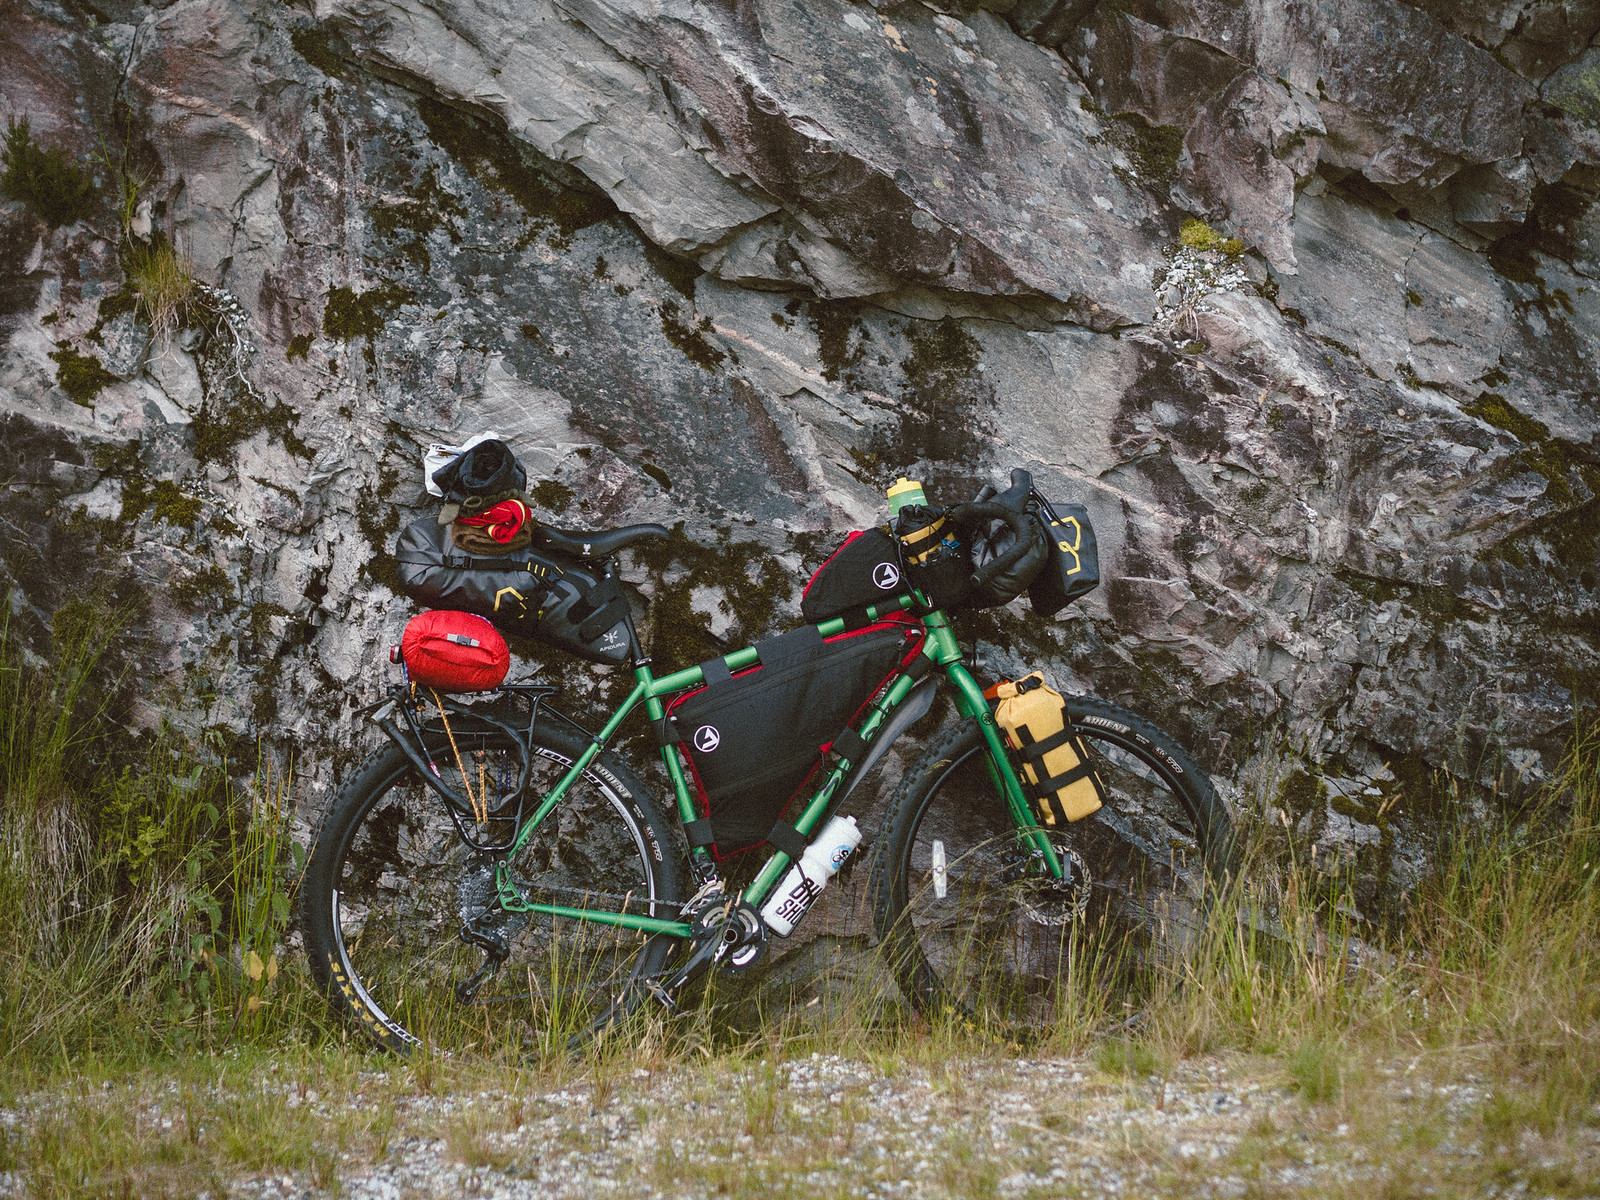 loaded touring bicycle leaning against rock